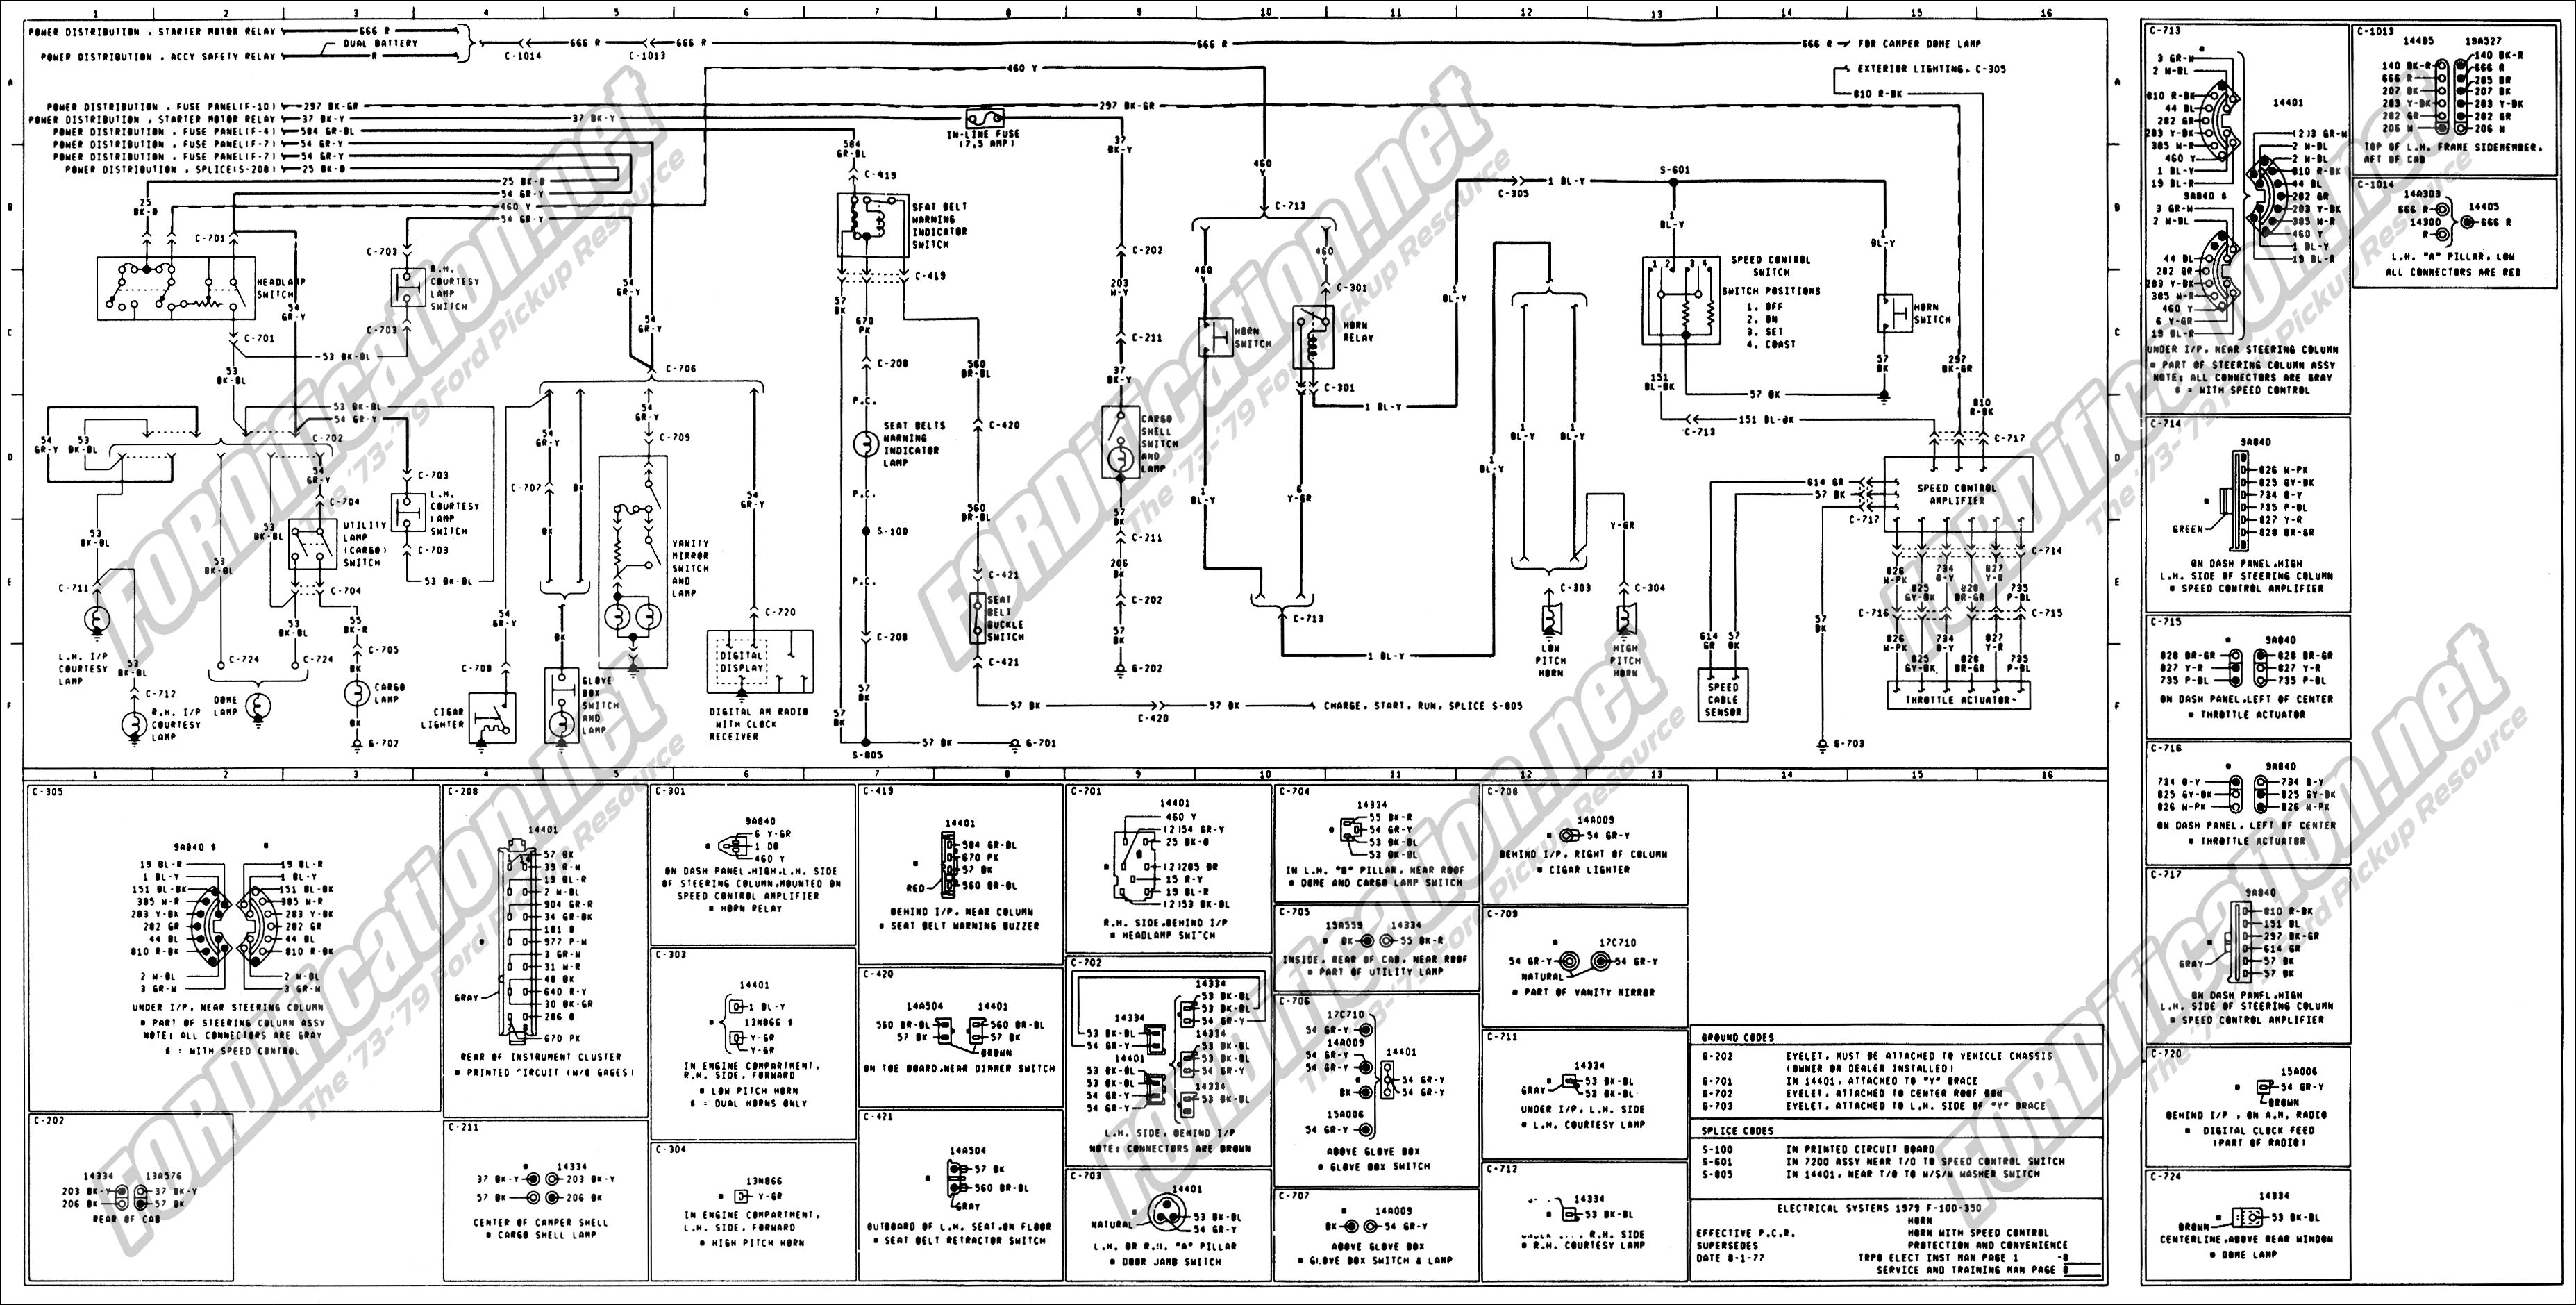 wiring_79master_8of9 1997 f 250 wiring diagram factory to after market stereo 1979 ford f150 radio wiring diagram at gsmportal.co